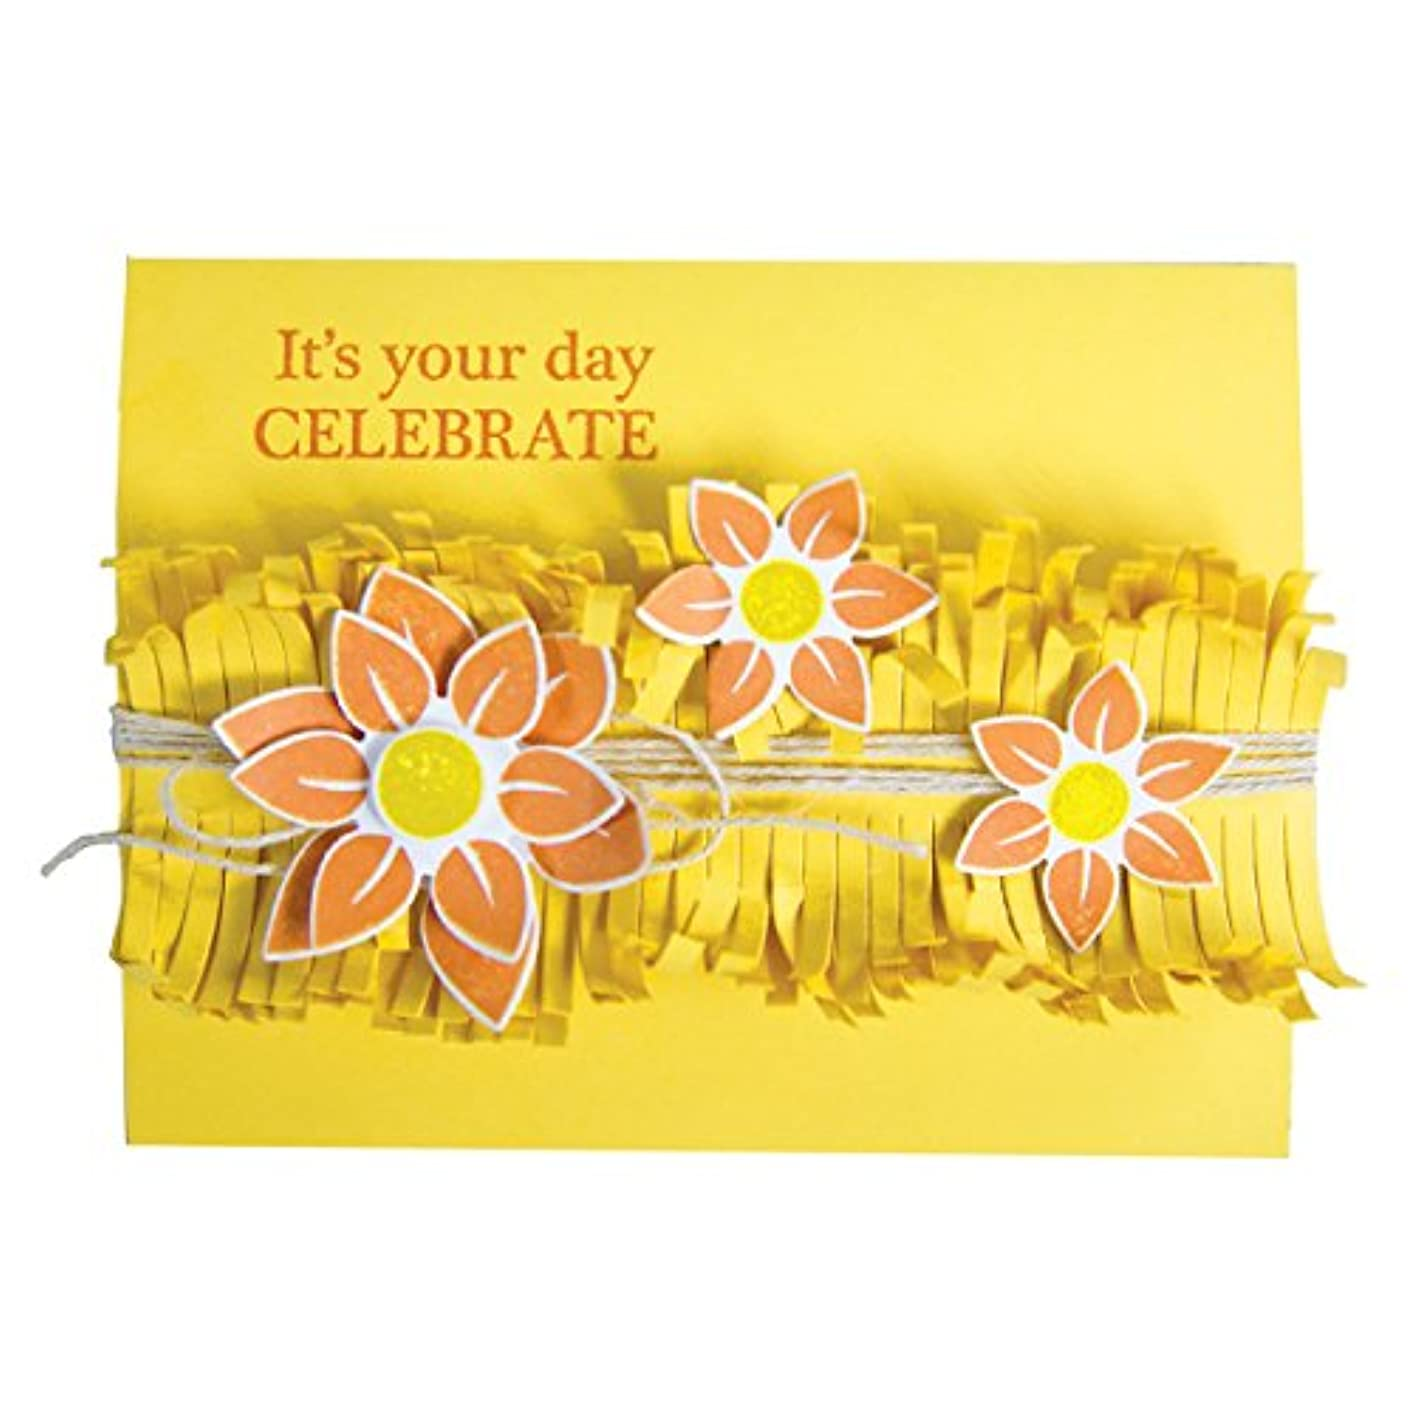 Spellbinders Shapeabilities Celebrations Fringed Garland Etched/Wafer Thin Dies